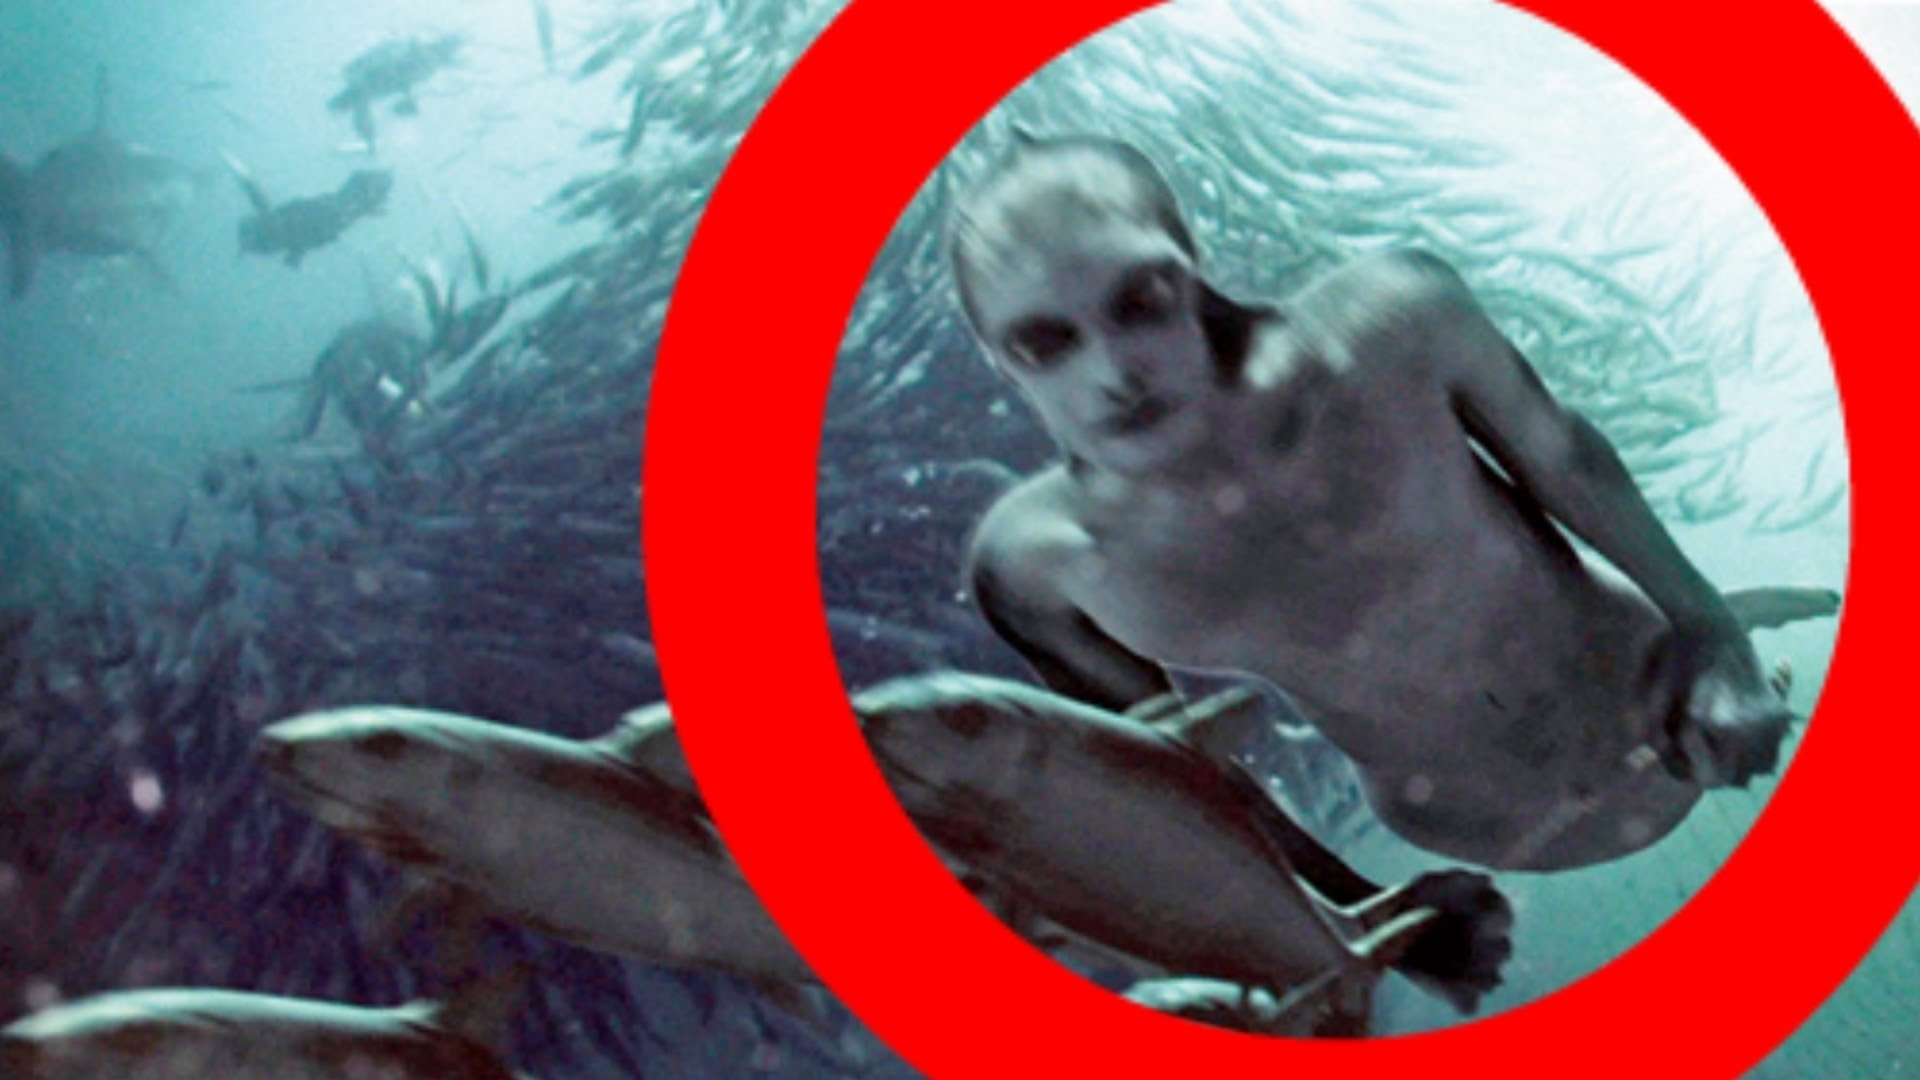 real mermaids (and merman) caught on camera!? (mermaid evidence